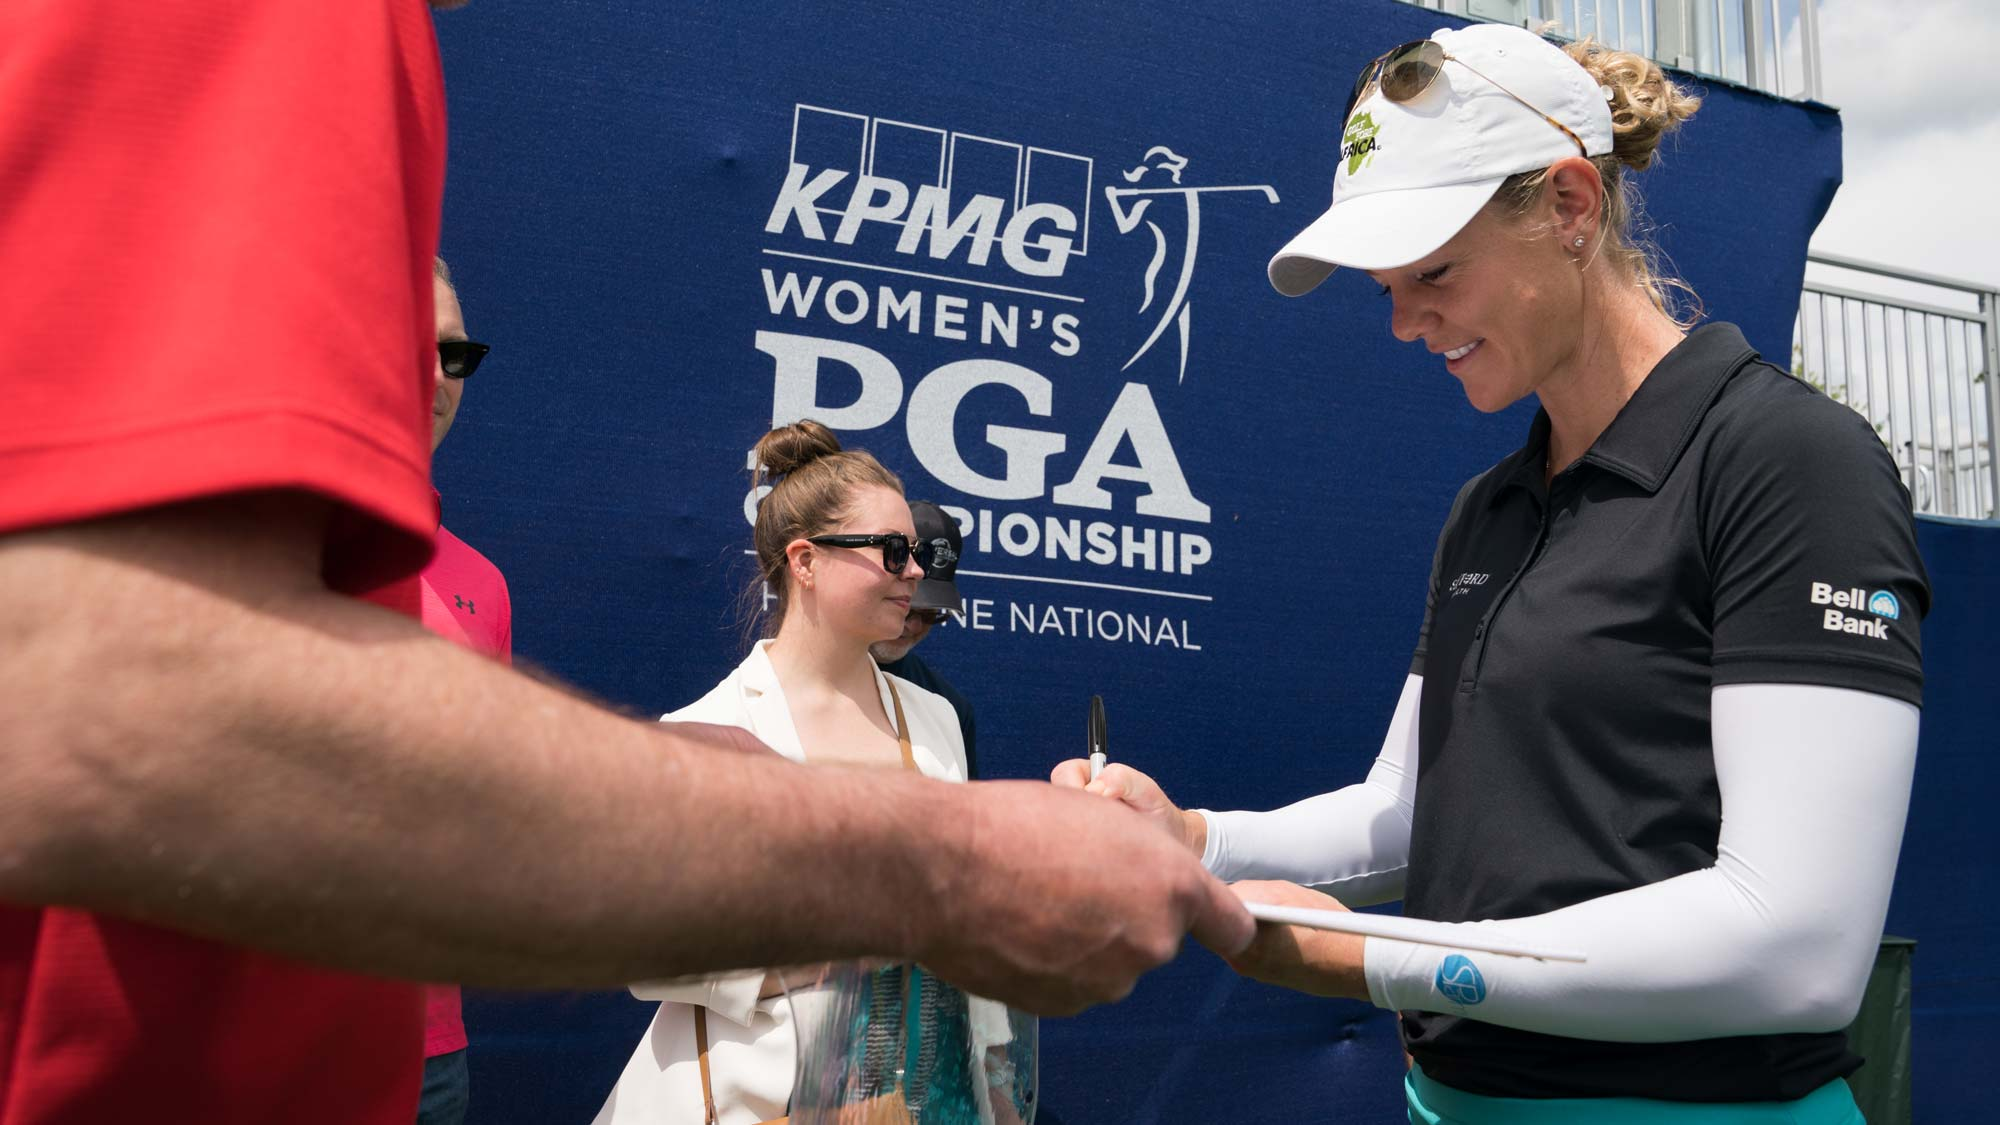 Amy Olson signs autographs during the practice round for the 65th KPMG Women's PGA Championship